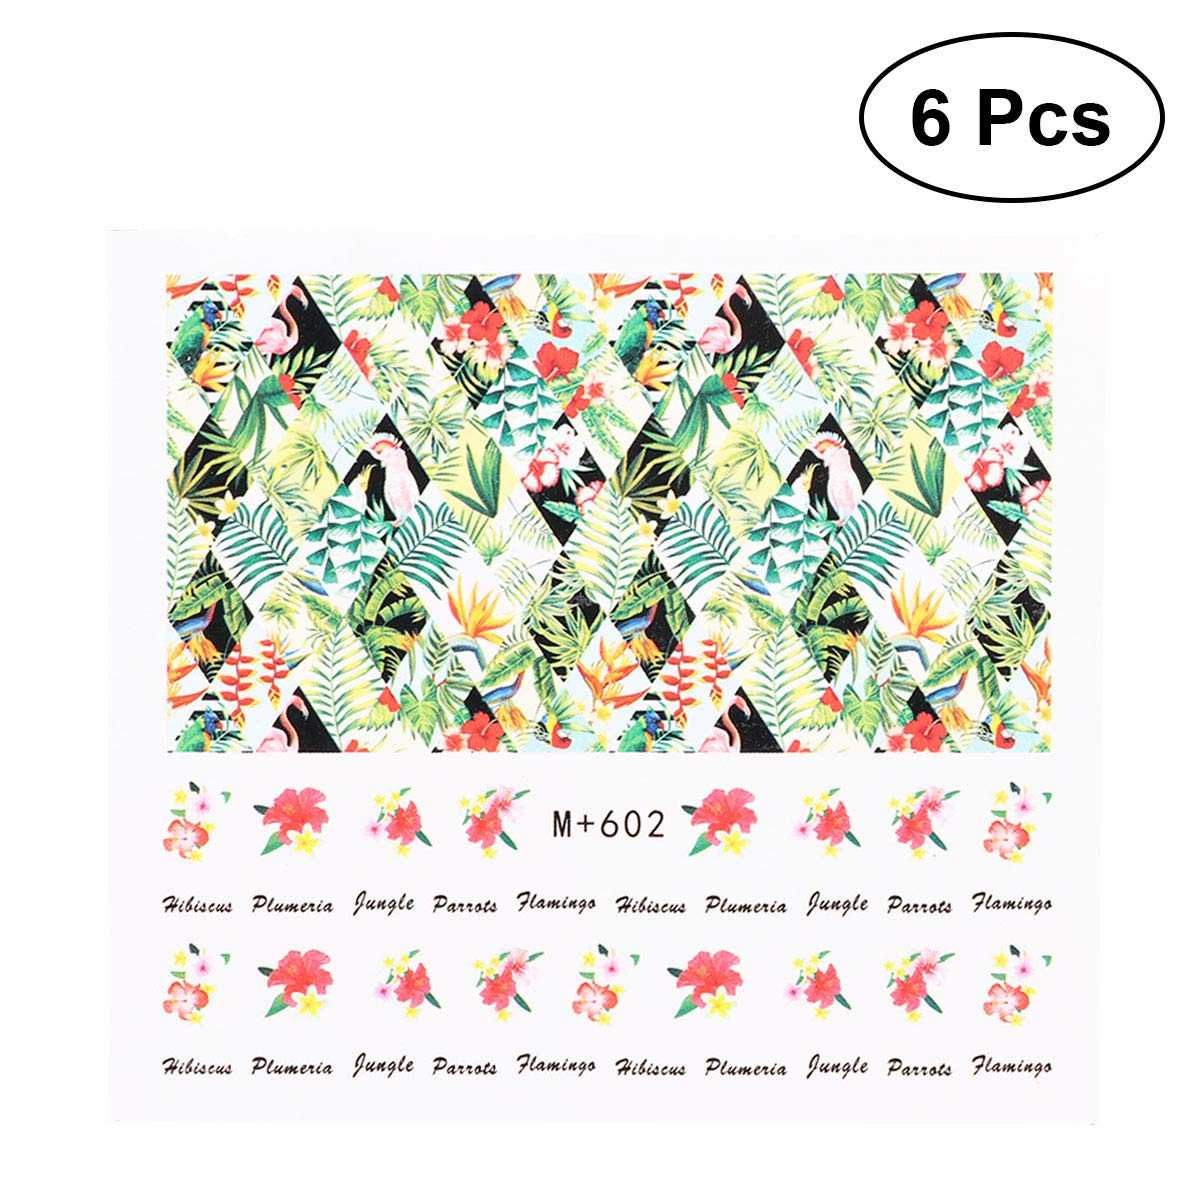 Amazon com bestoyard 6pcs cartoon hawaii design nail art sticker tip decal manicure decoration watermark nail art tip for women girls ladiesm 602 toys